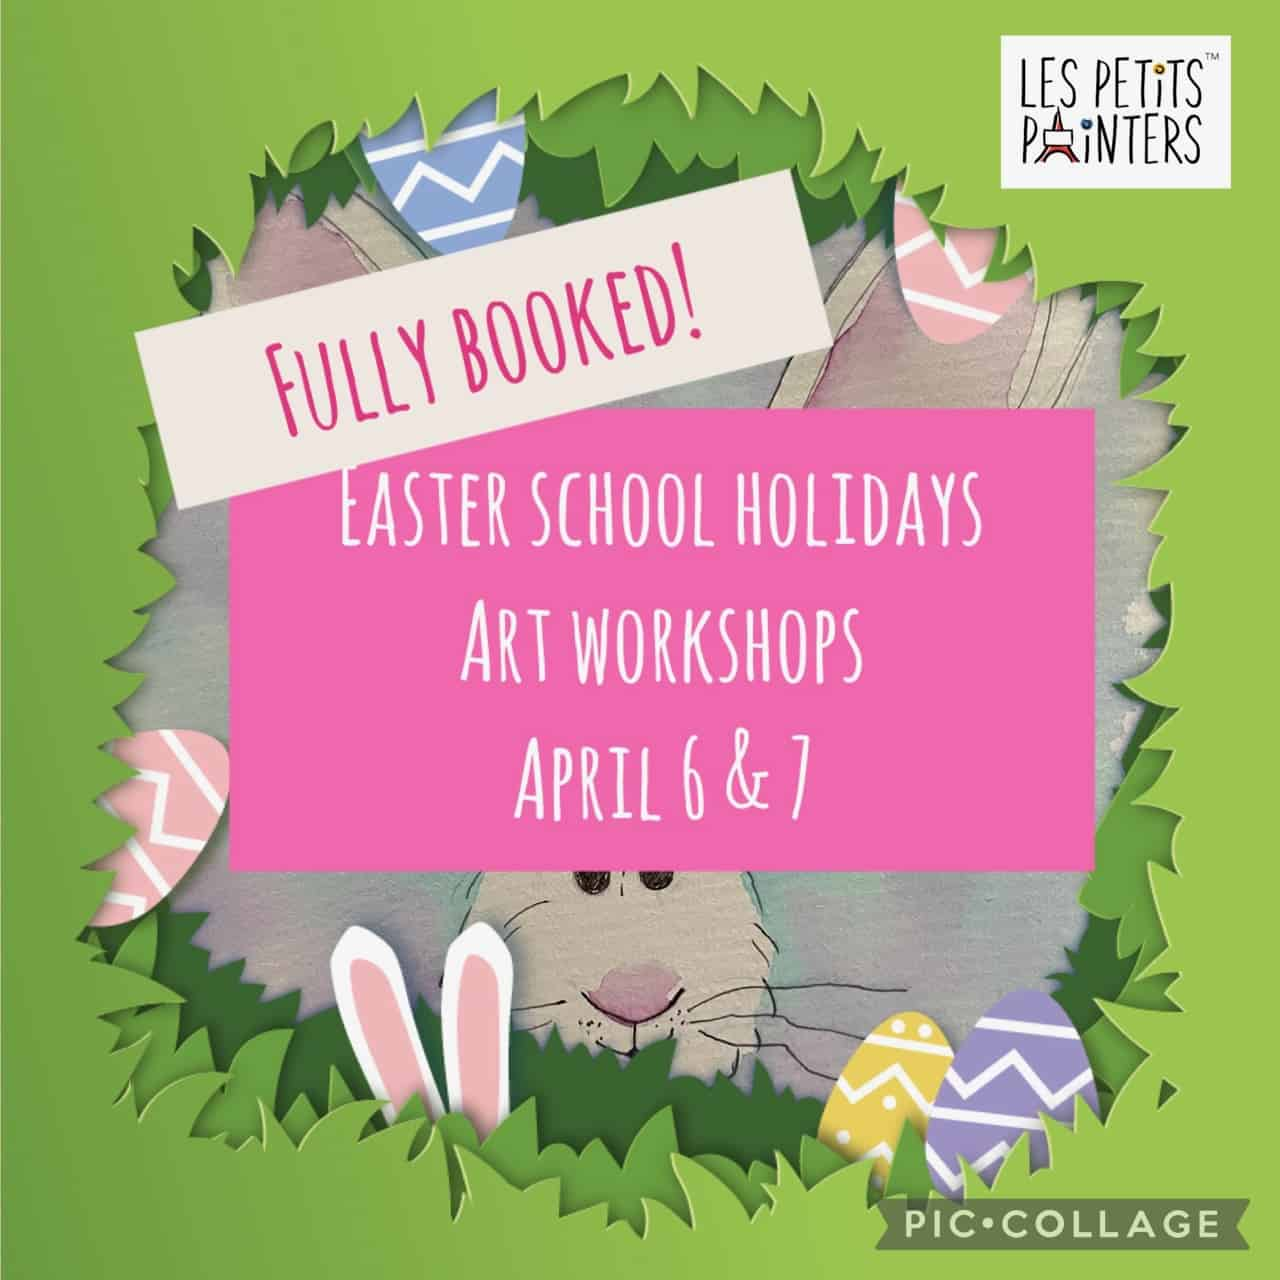 Easter school holiday art activities for kids, arts and crafts classes by Les Petits Painters, Easter school vacation workshop